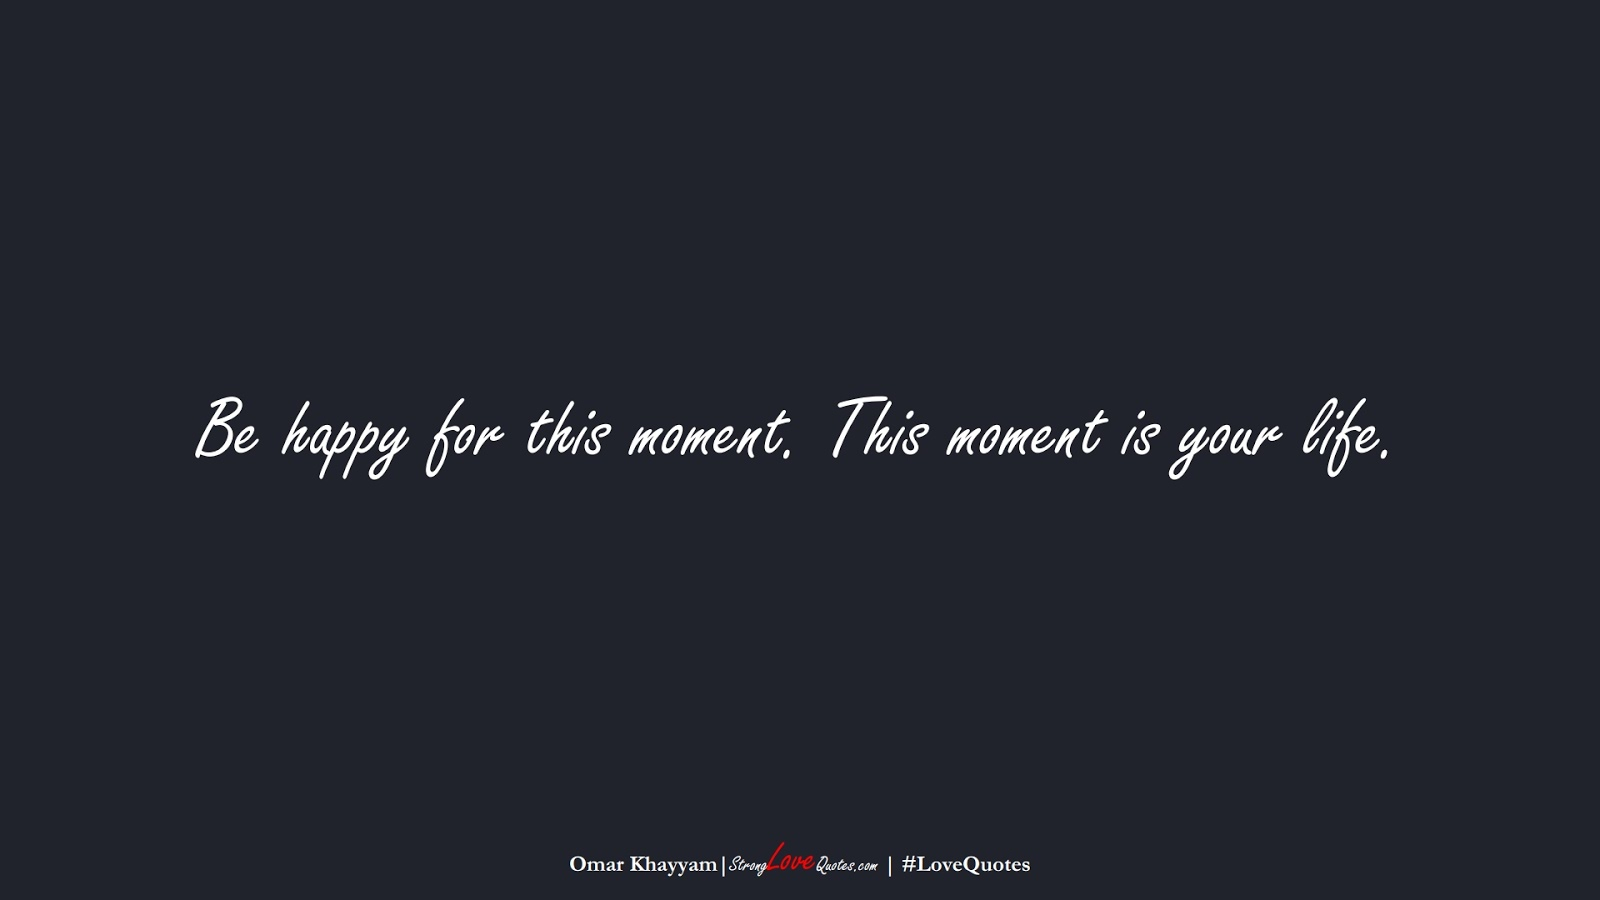 Be happy for this moment. This moment is your life. (Omar Khayyam);  #LoveQuotes